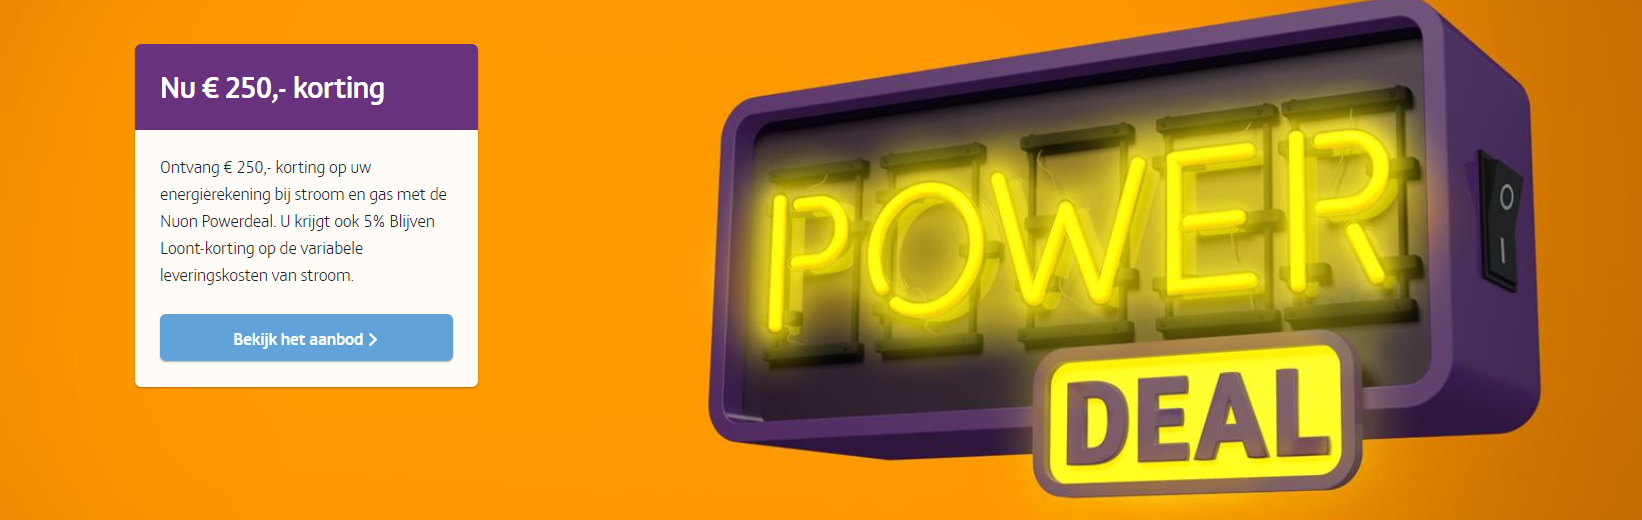 nuon powerdeal